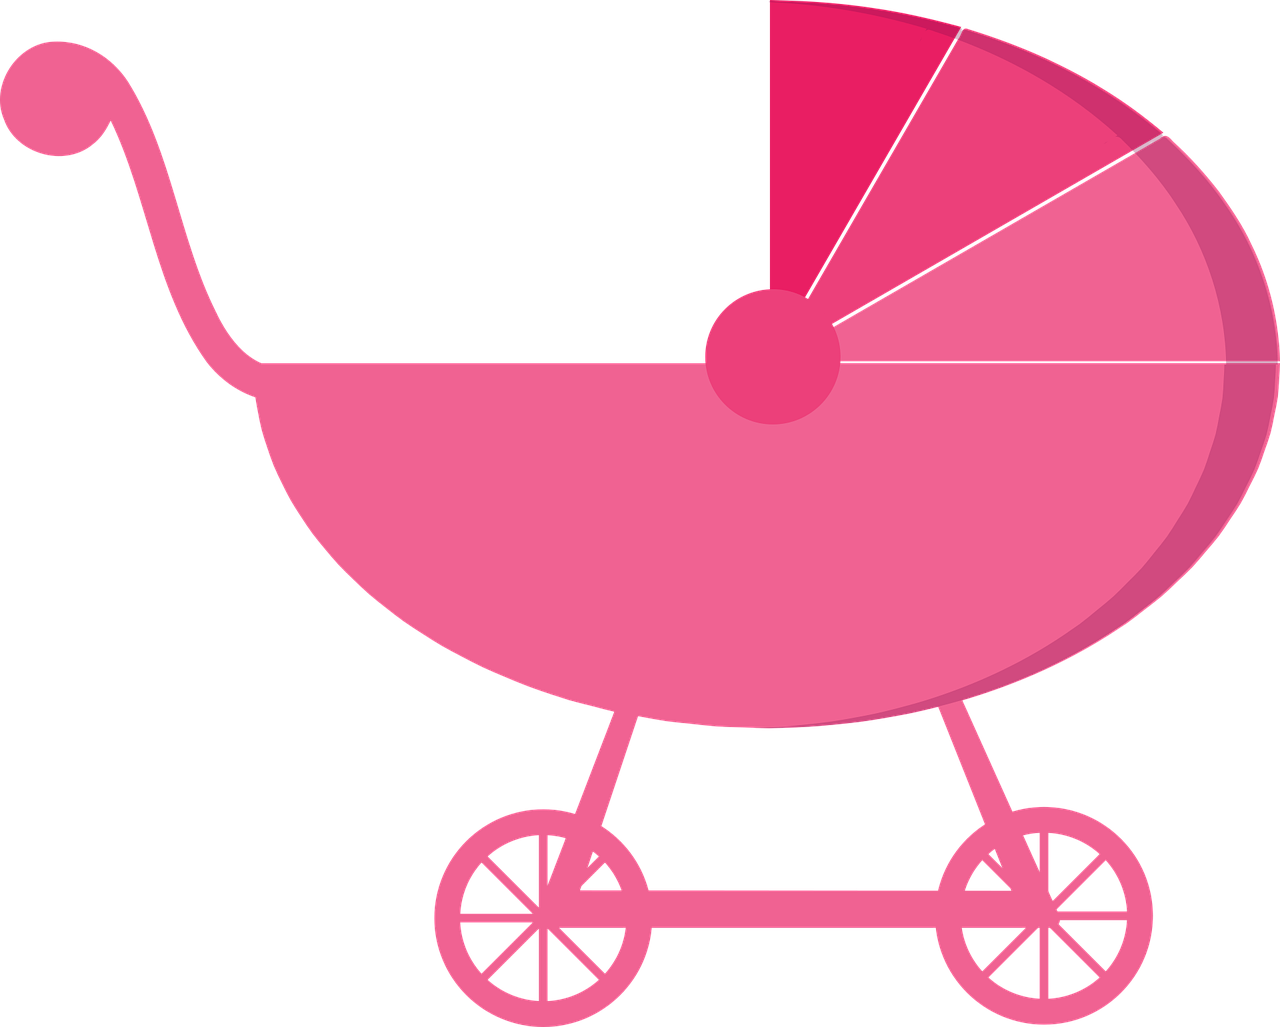 pink baby girl free vector graphic on pixabay https creativecommons org licenses publicdomain